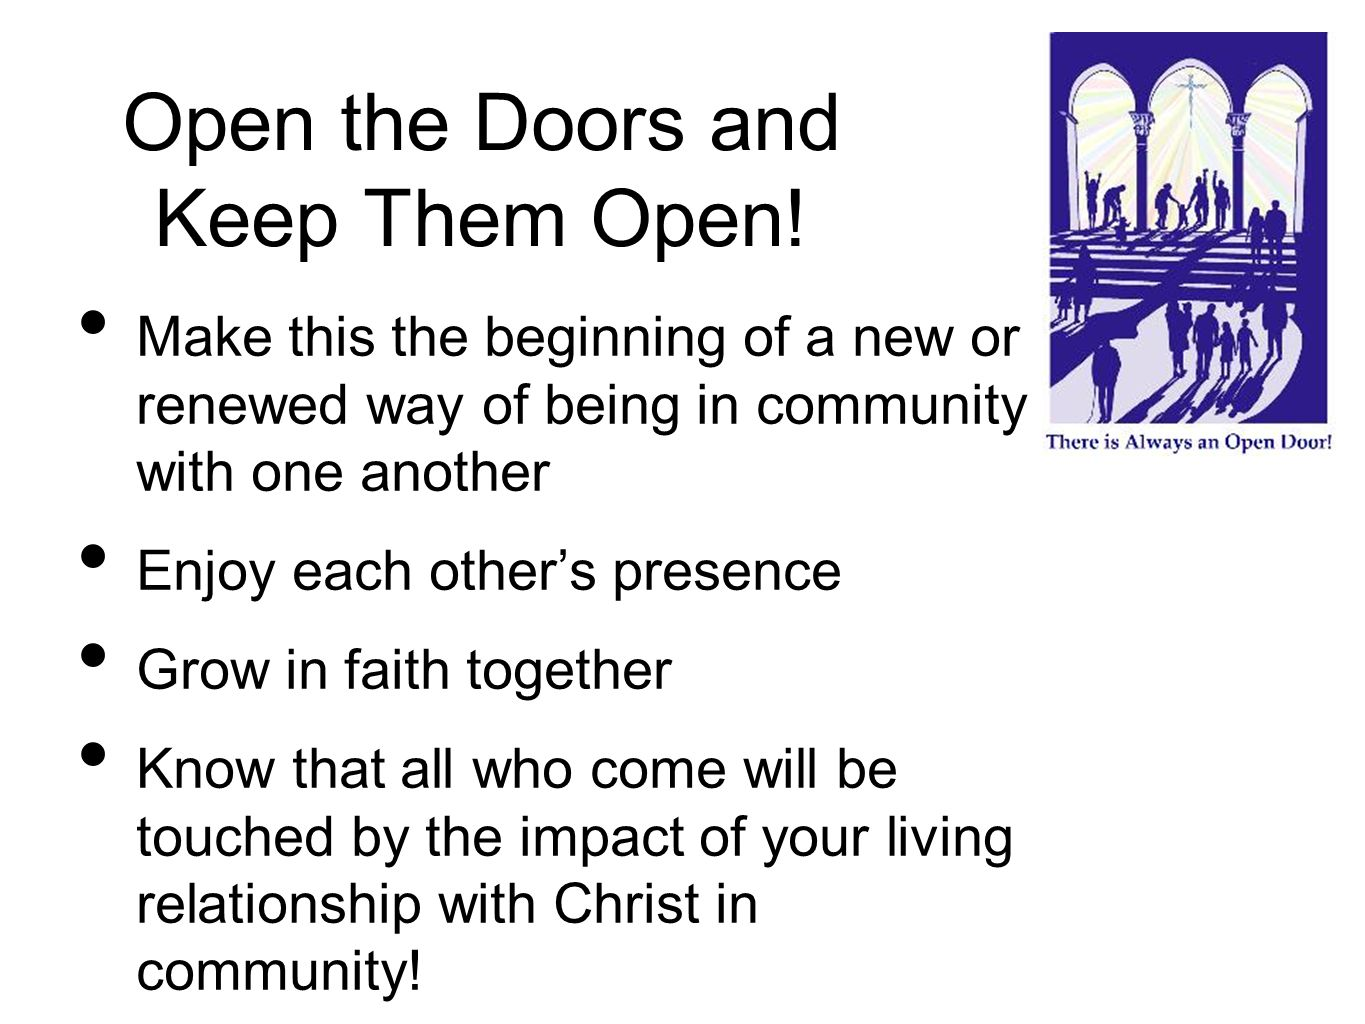 Open the Doors and Keep Them Open.